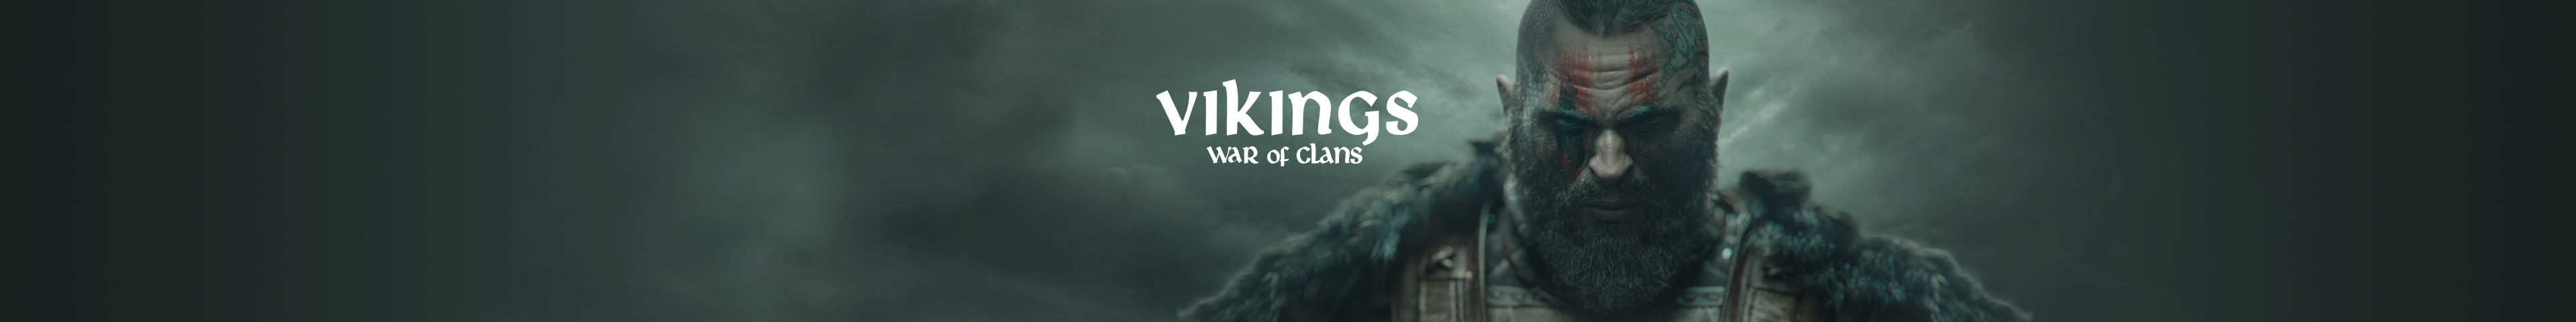 Vikings: War of Clans is celebrating its fifth birthday!